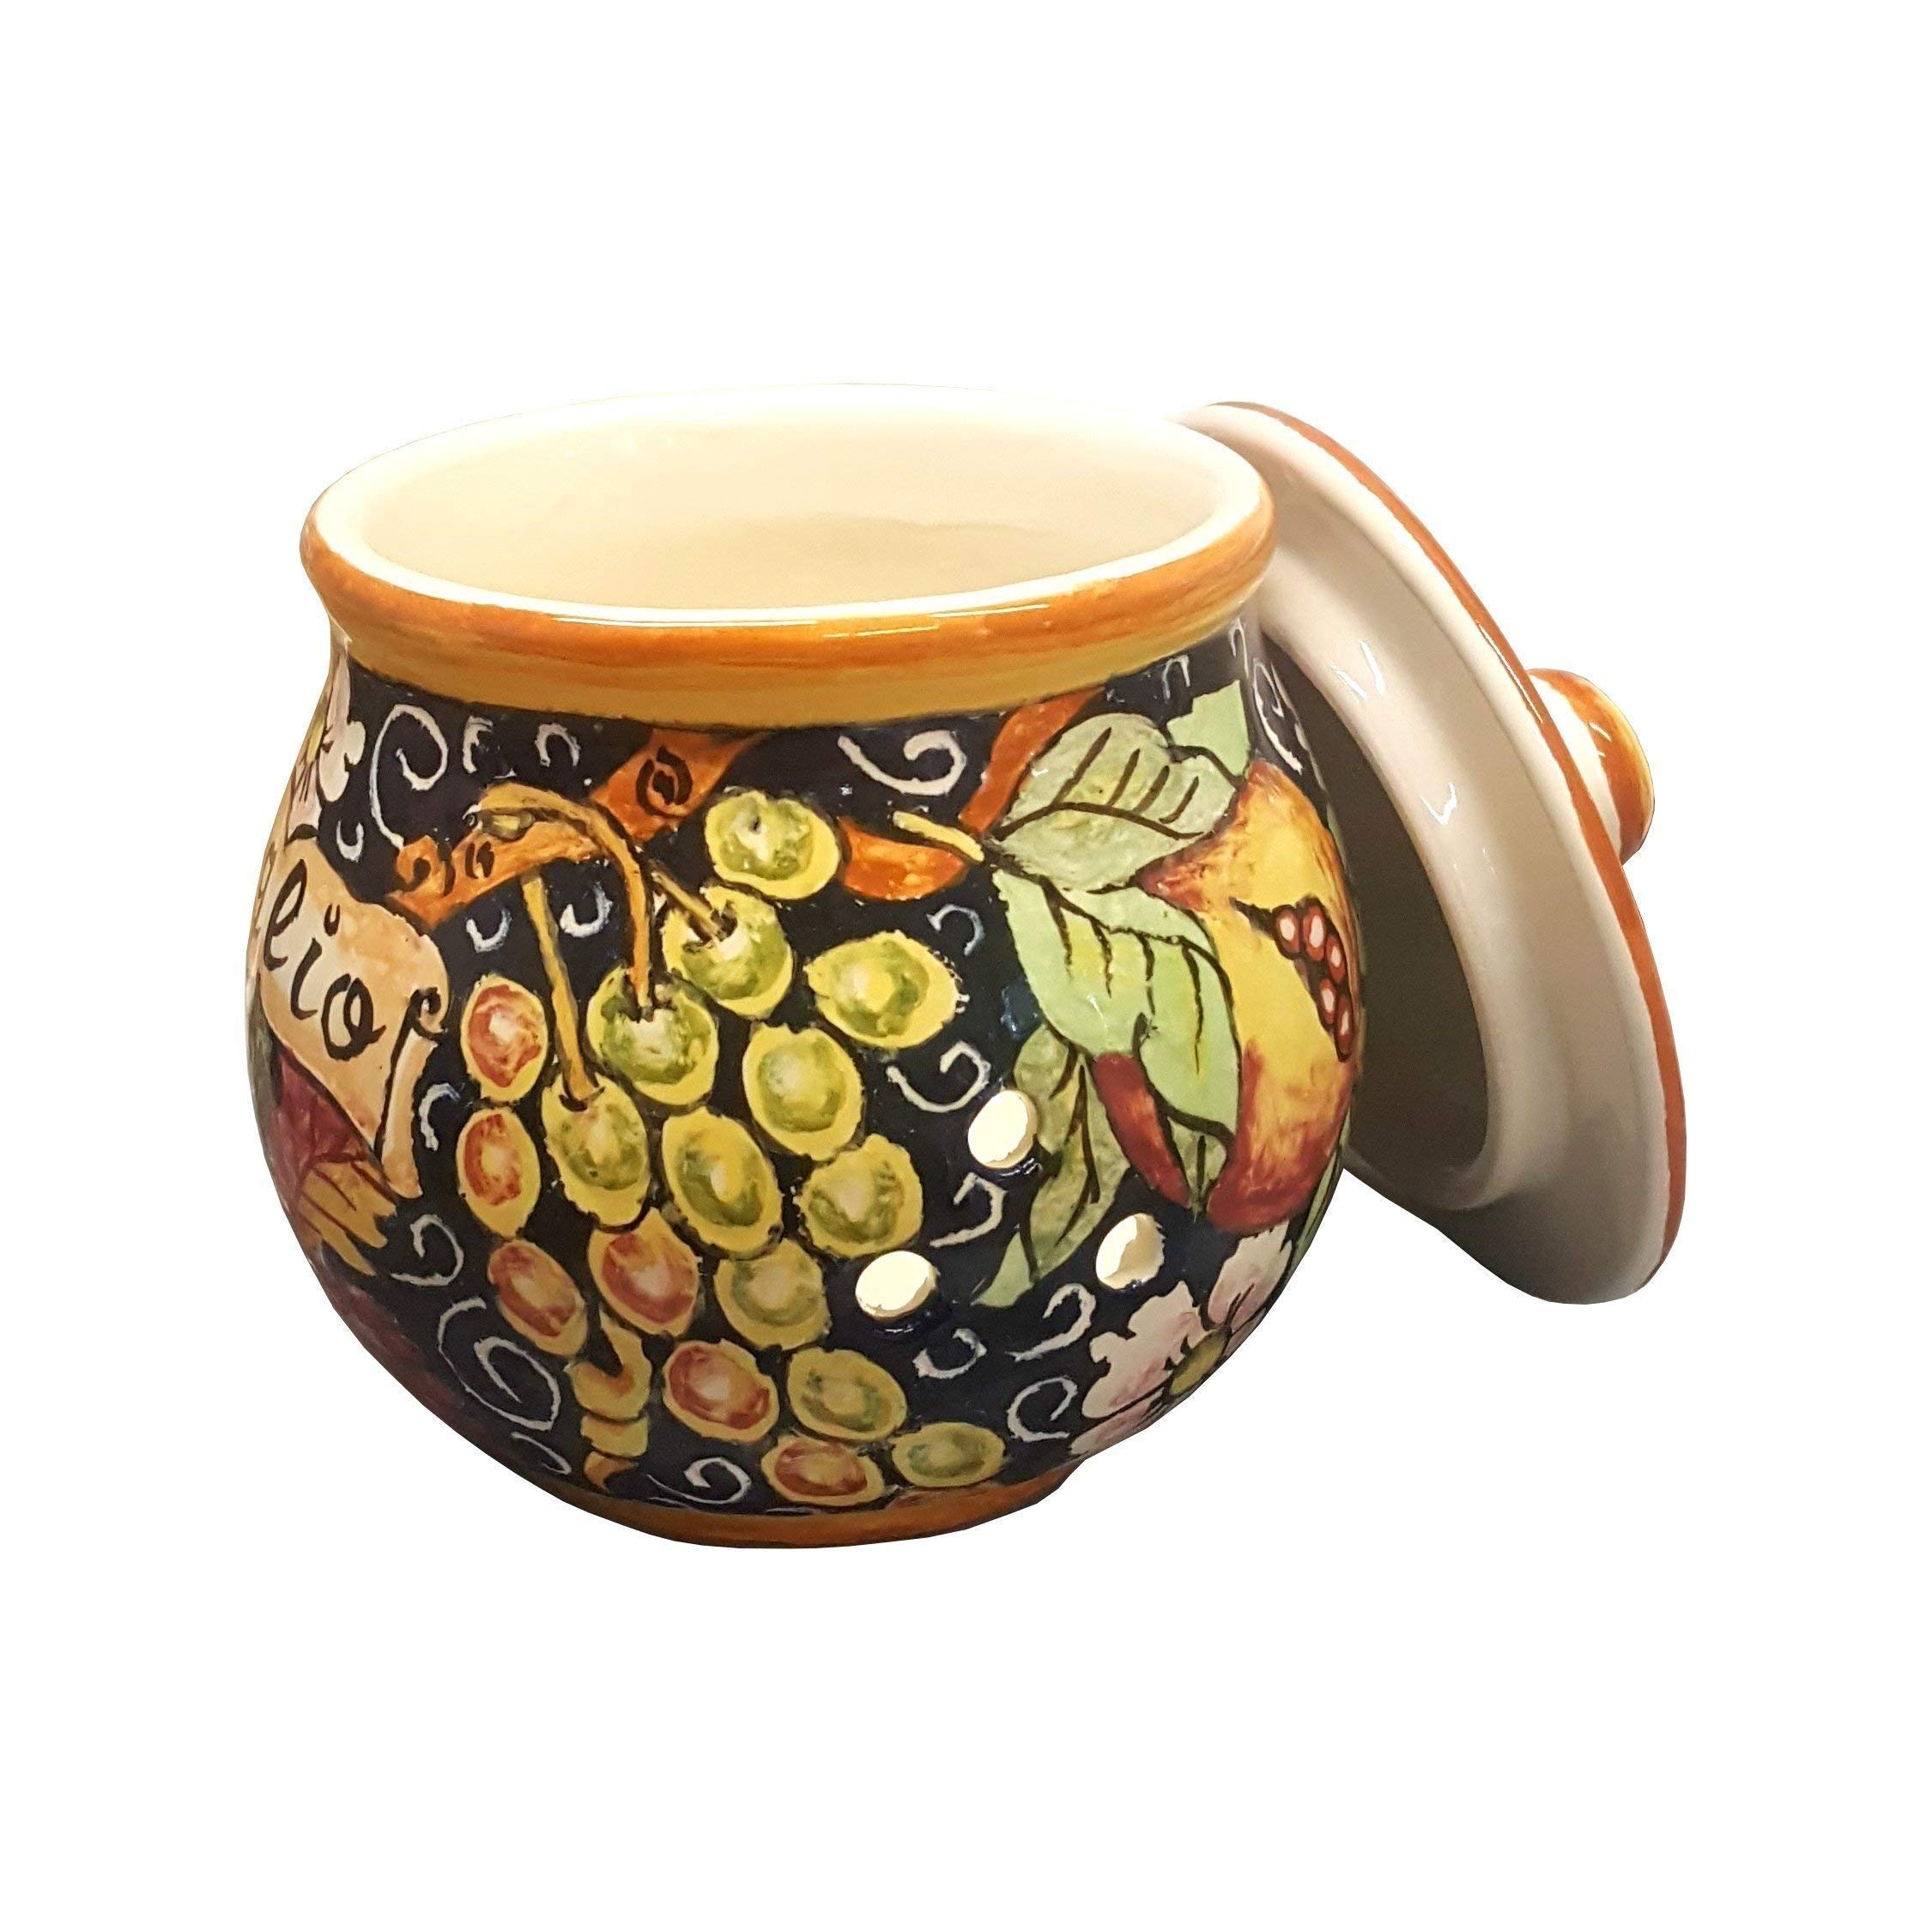 CERAMICHE D'ARTE PARRINI- Italian Ceramic Garlic Brings Jar Holder Hand Painted Made in ITALY Decorated Grape Tuscan Art Pottery by CERAMICHE D'ARTE PARRINI since 1979 (Image #2)